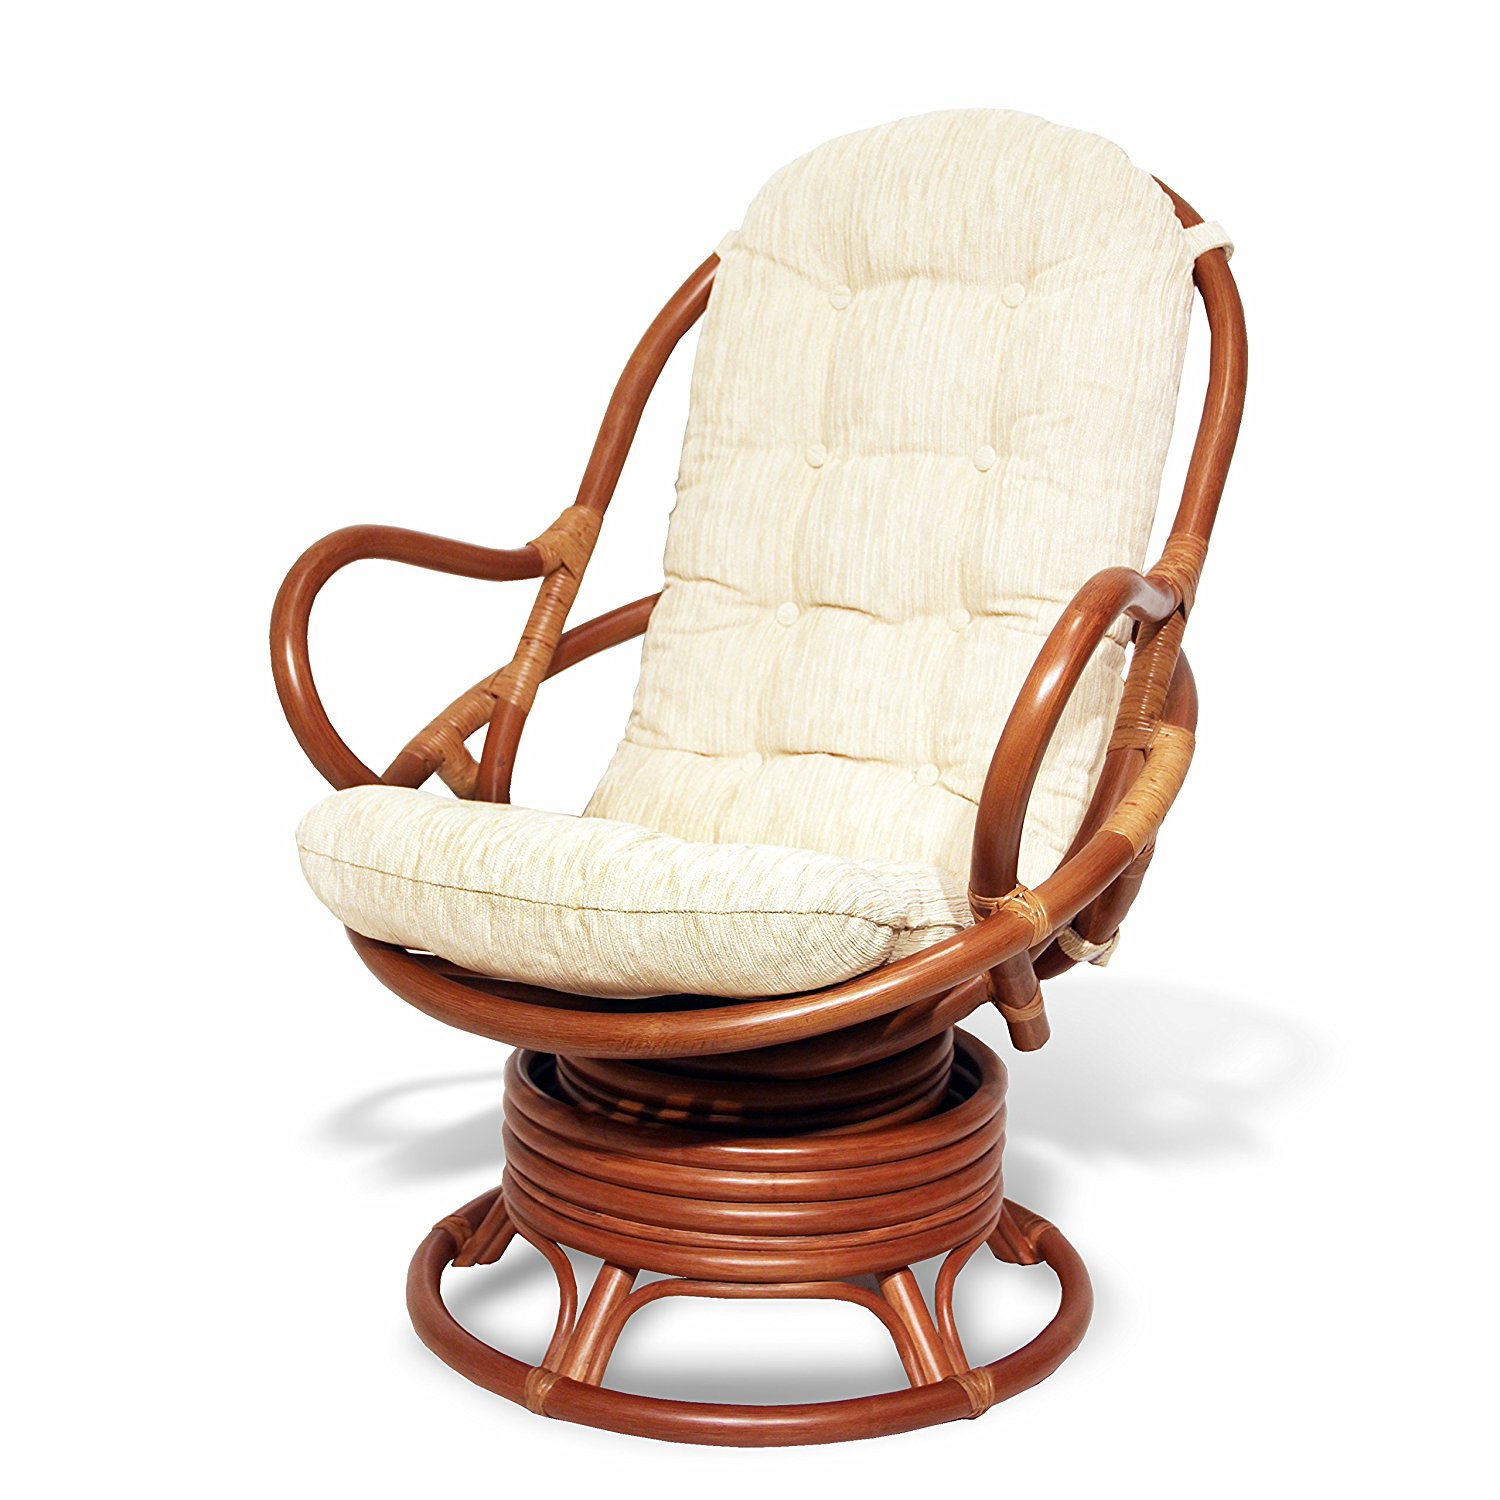 Rattan Swivel Rocker | Swivel Chair Cushion | Rattan Swivel Rocker Cushion